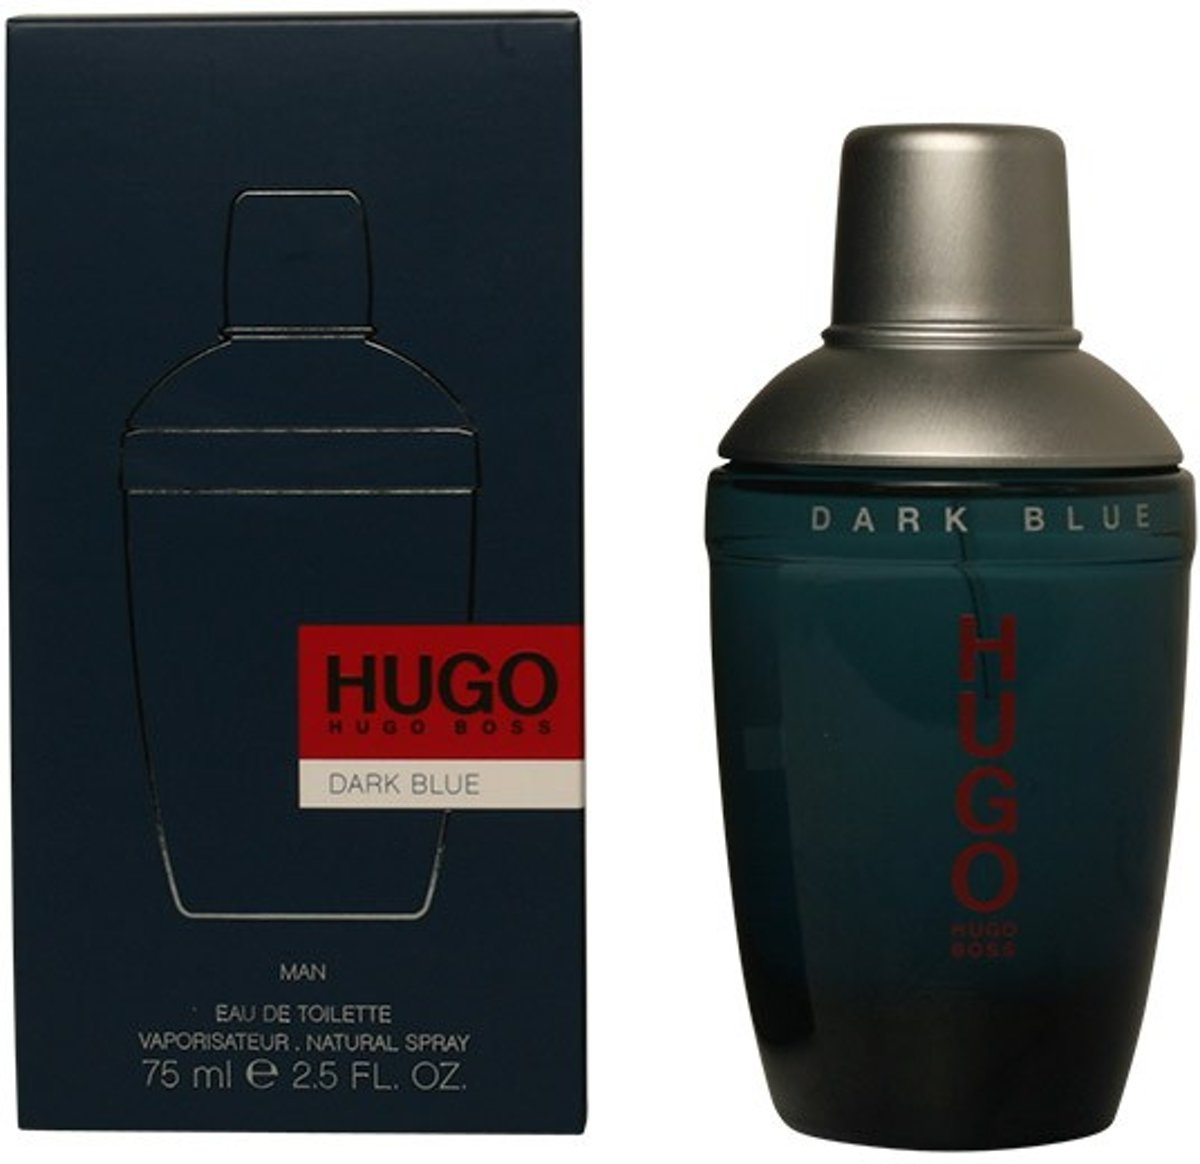 MULTI BUNDEL 2 stuks DARK BLUE eau de toilette spray 75 ml